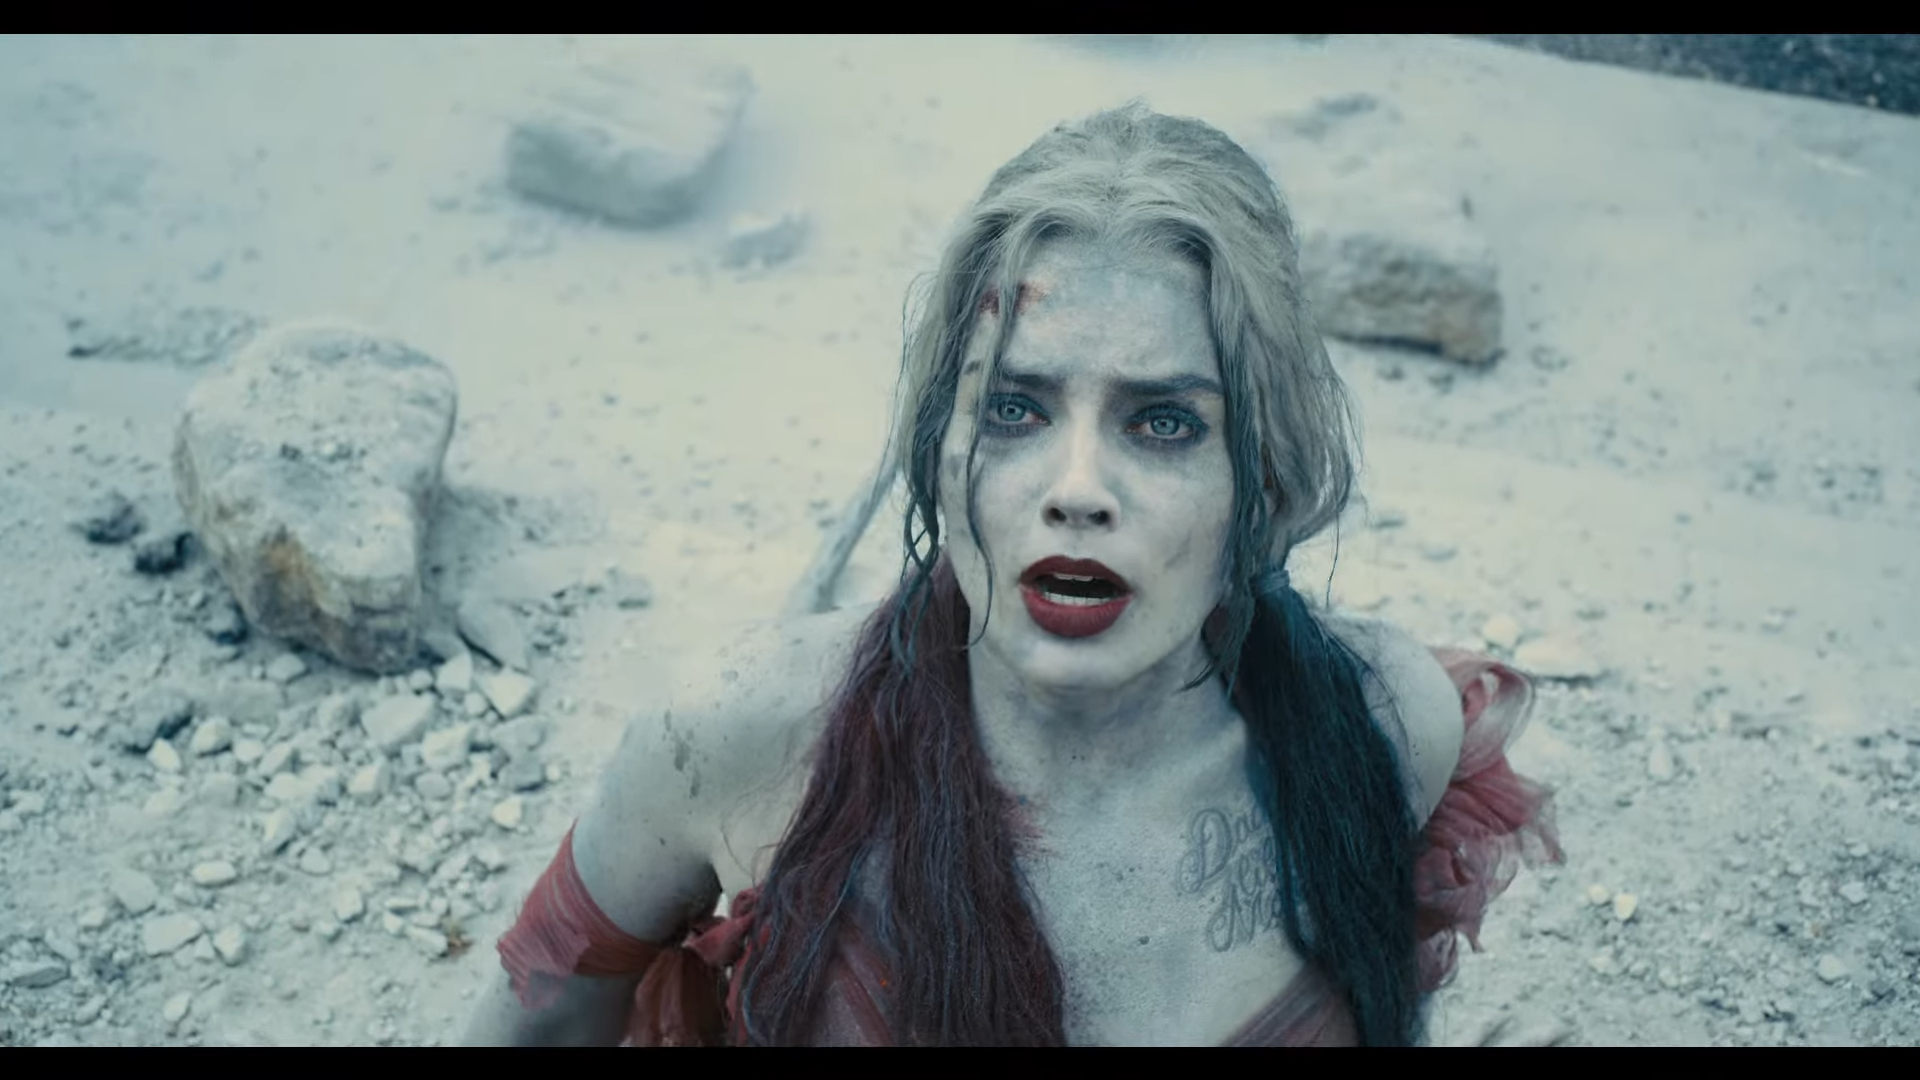 THE-SUICIDE-SQUAD-Rebellion-Trailer-1-54-screenshot-64